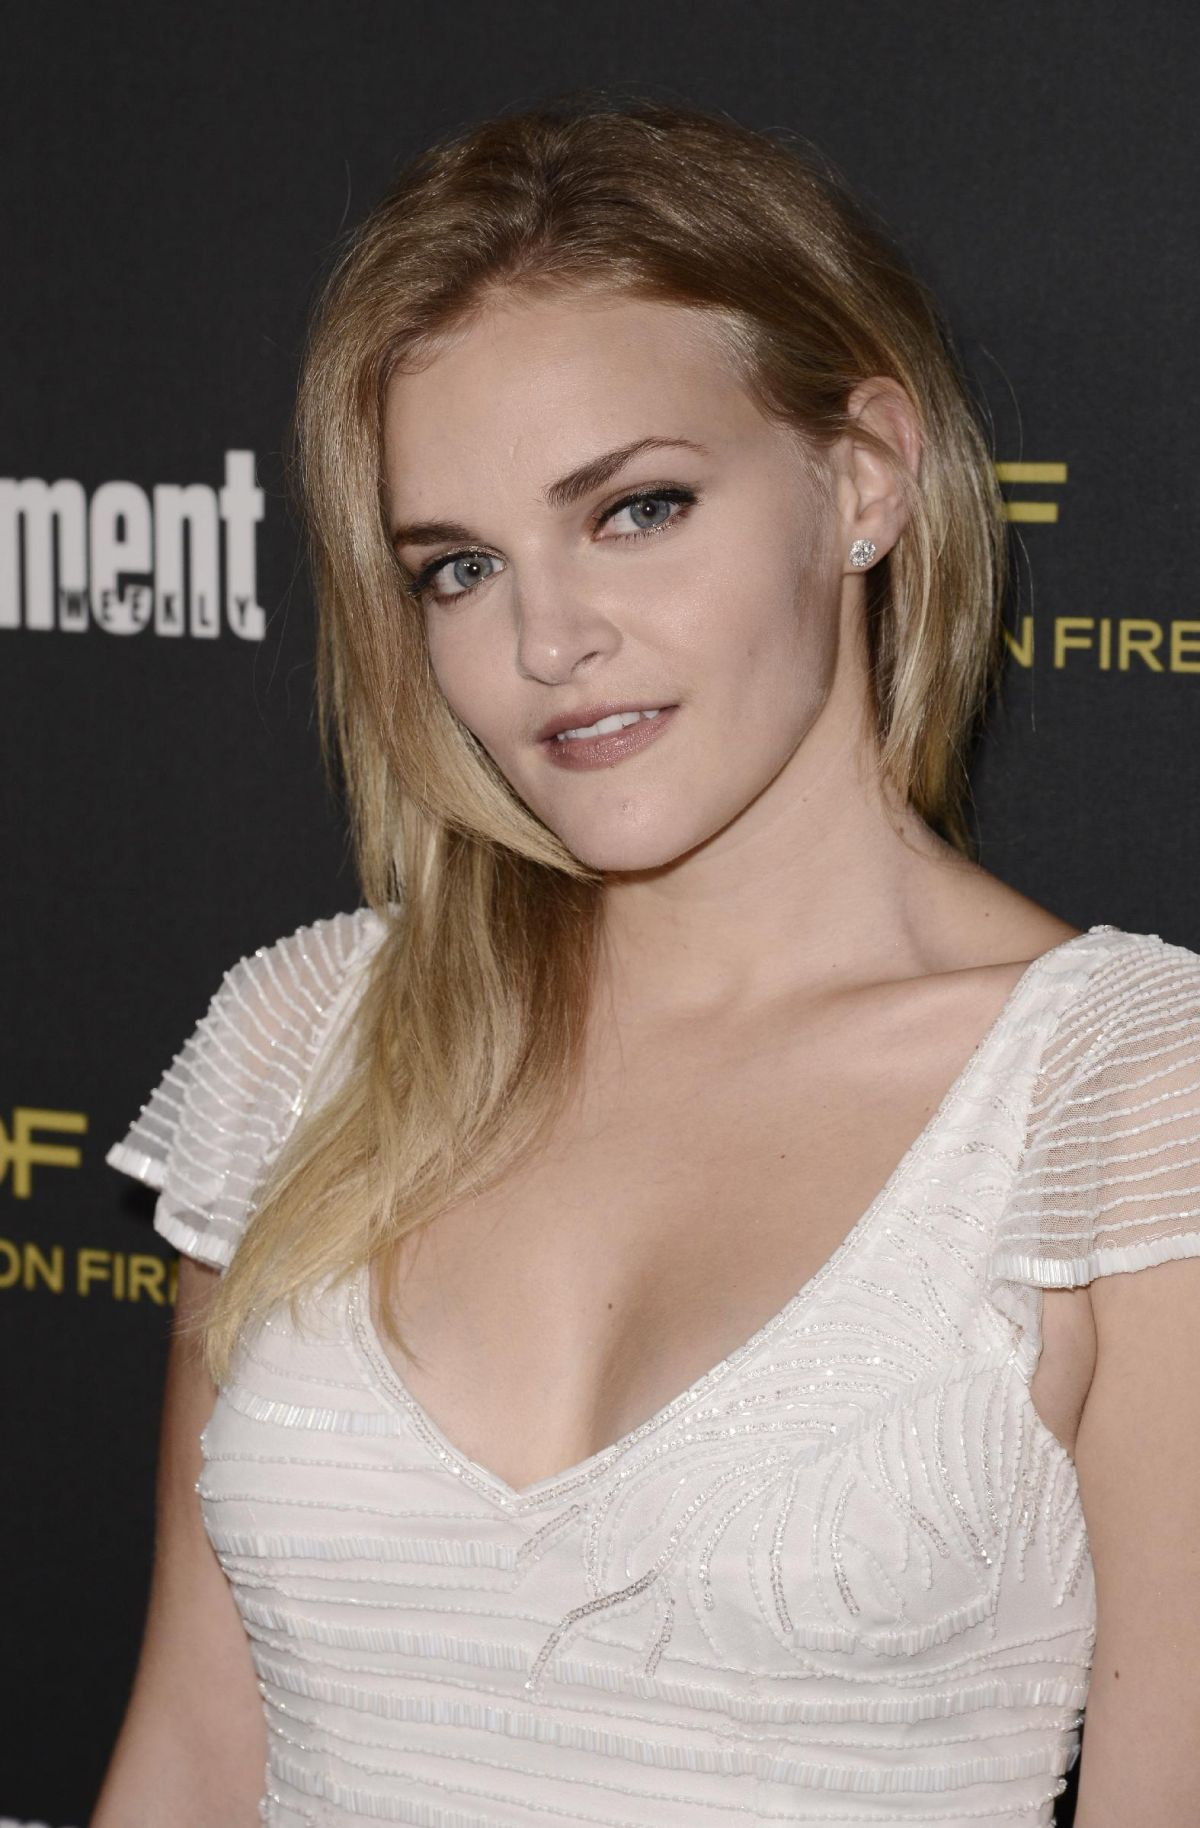 Snapchat Madeline Brewer naked (16 pics), Sideboobs